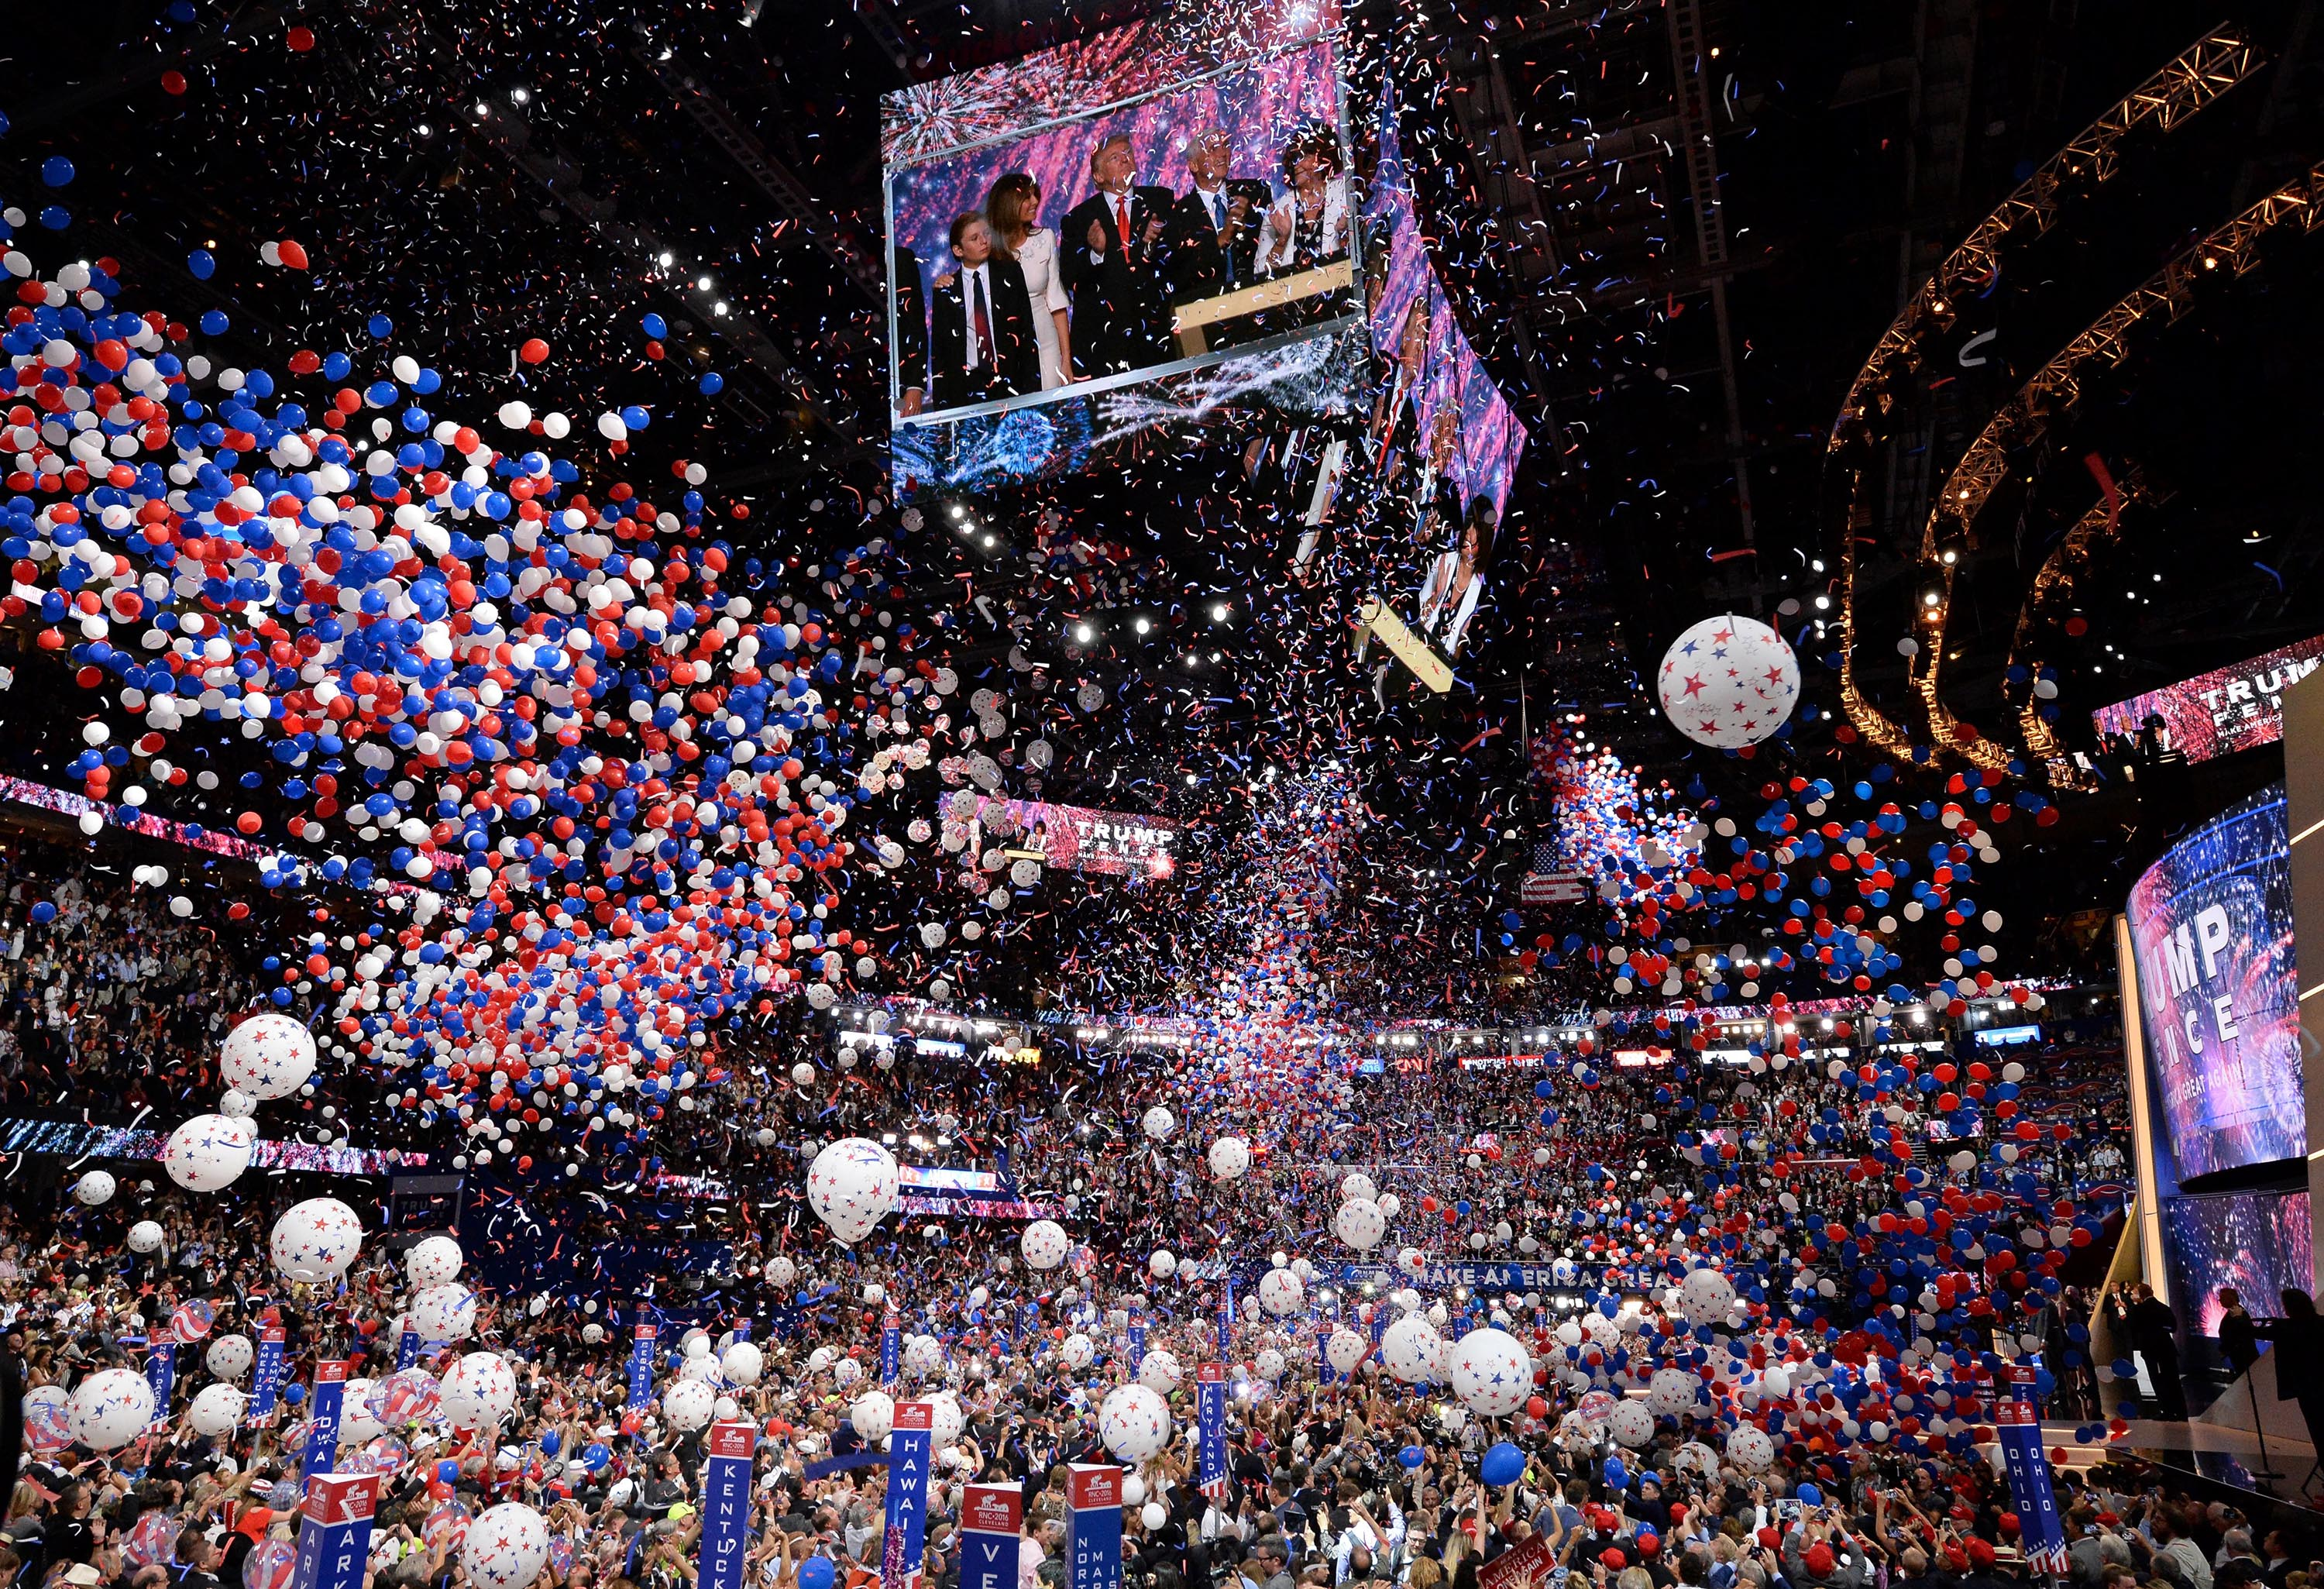 Republican National Convention will test Jacksonville attendees daily for coronavirus